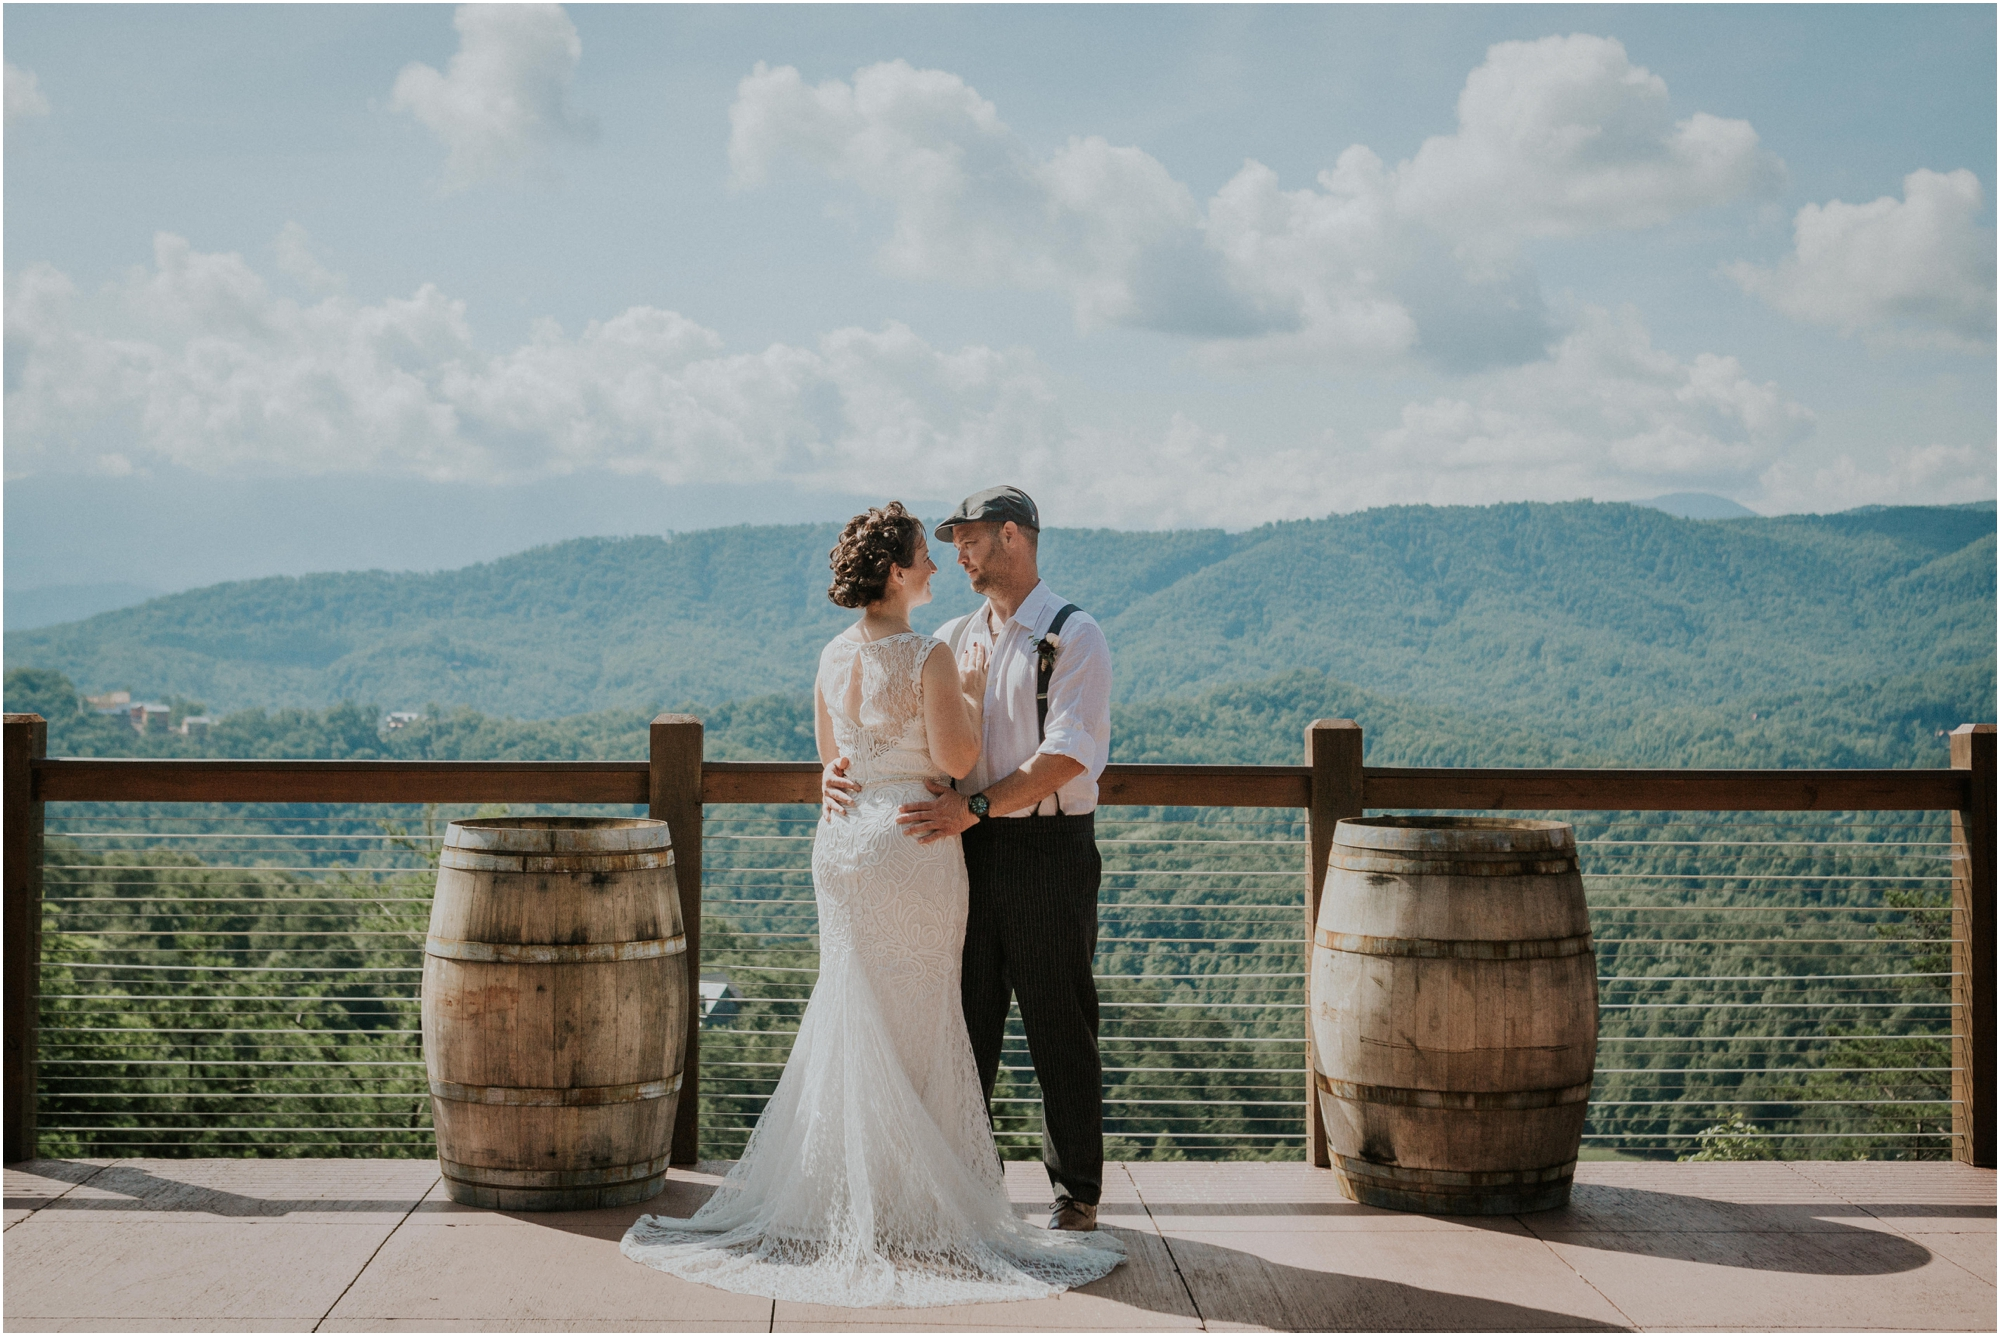 cabin-parkside-resort-the-magnolia-venue-tennessee-mountain-views-intimate-wedding_0095.jpg